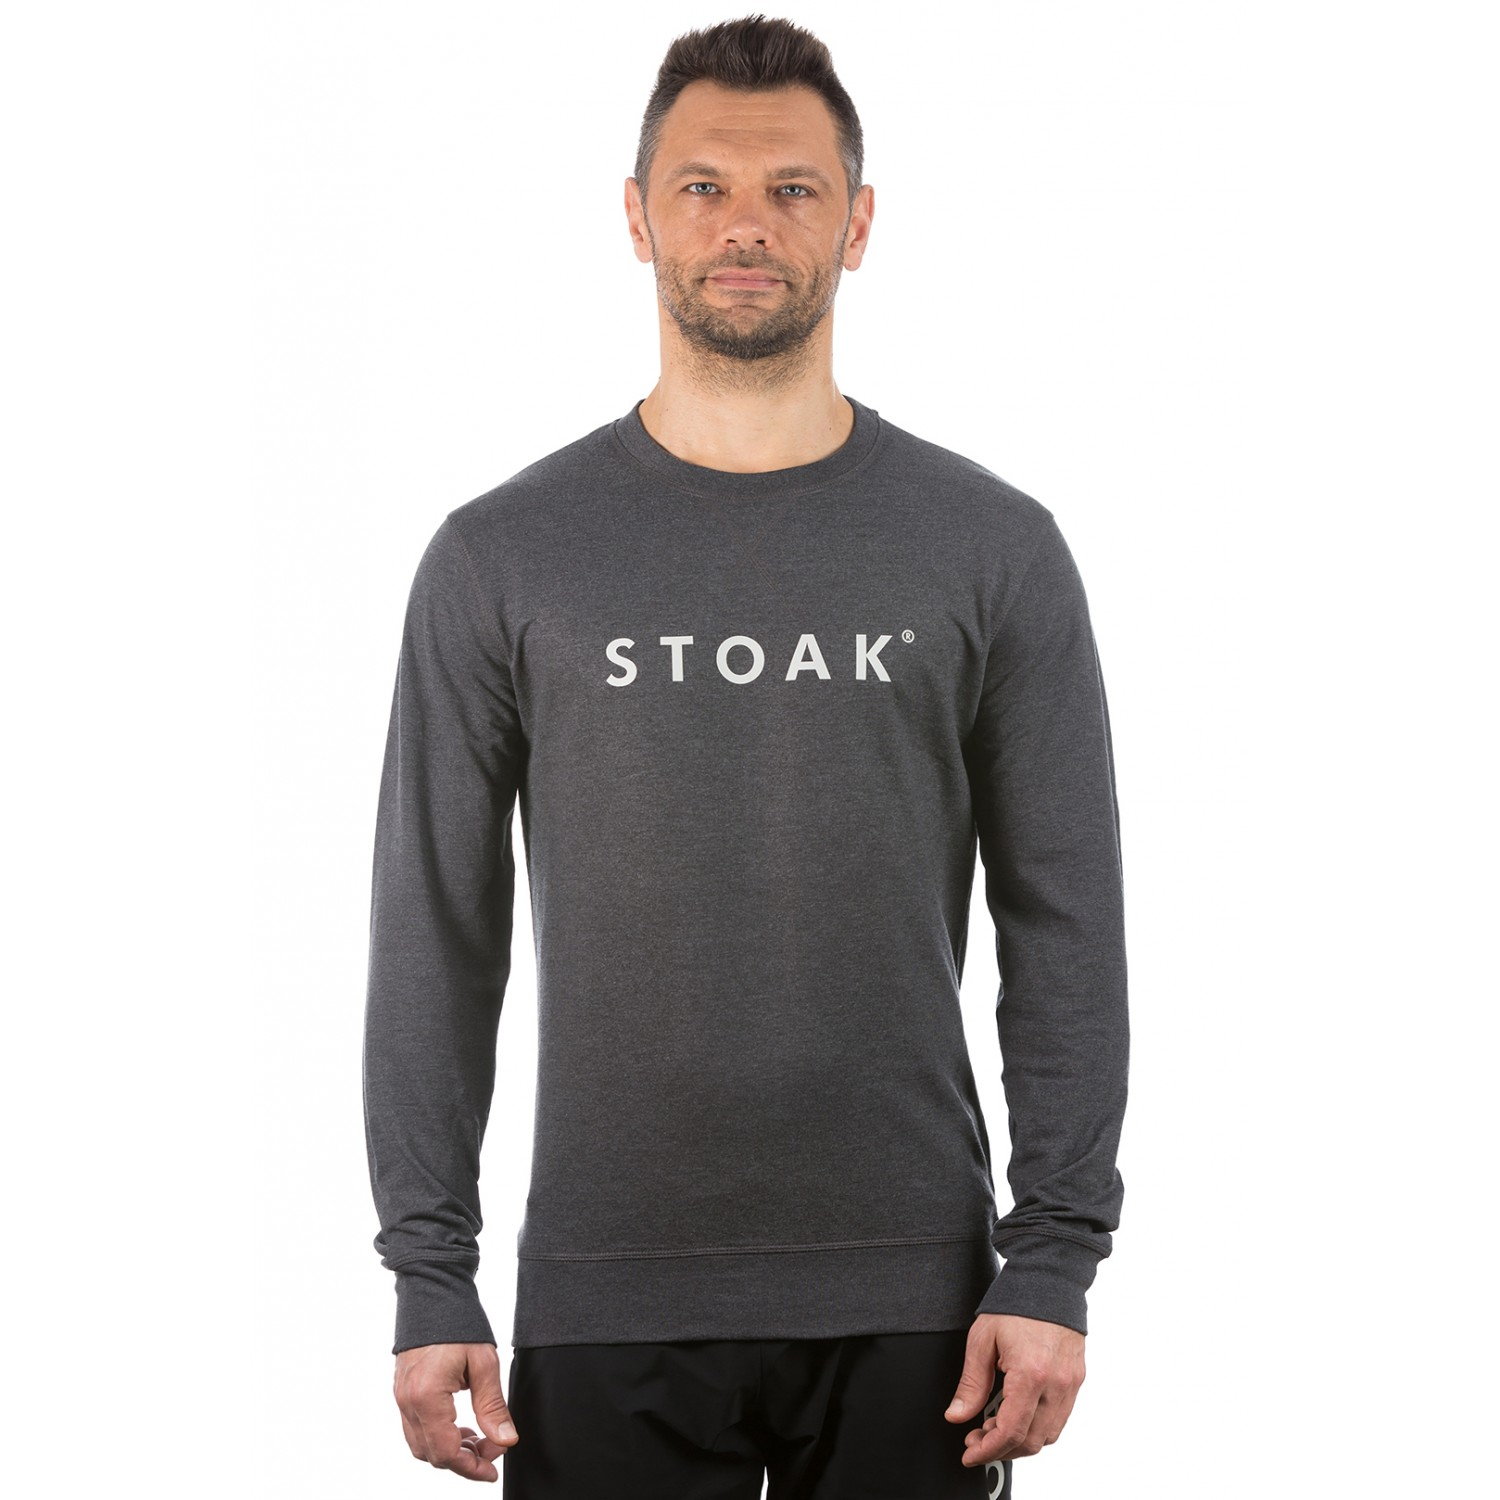 STOAK STONE Crewneck